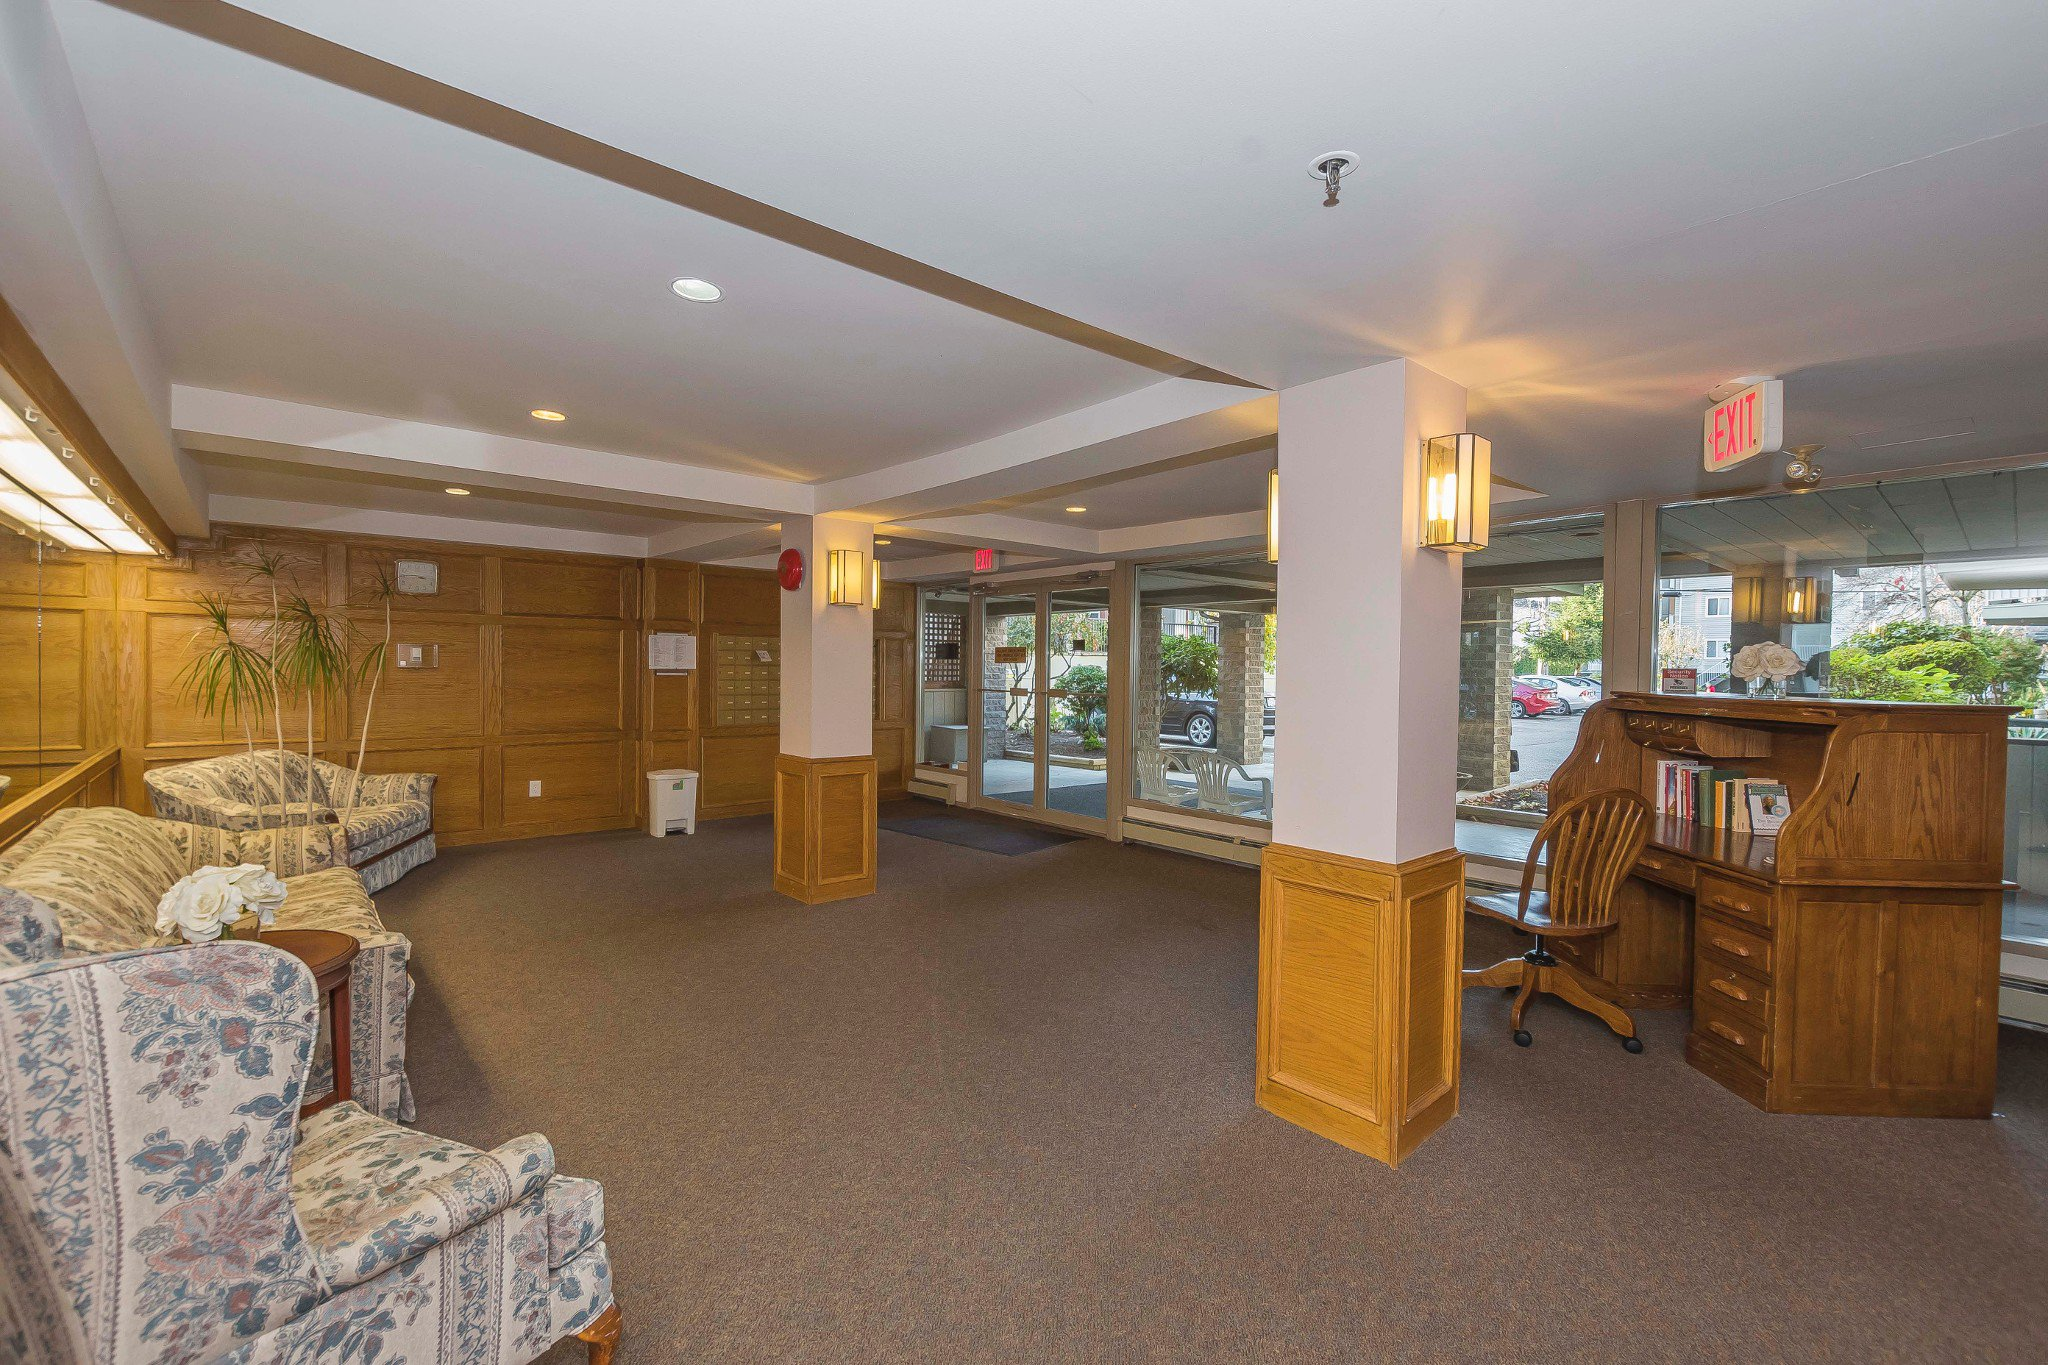 Photo 11: Photos: 305 9186 Edward Street in Chilliwack: Condo for sale : MLS®# R2218862